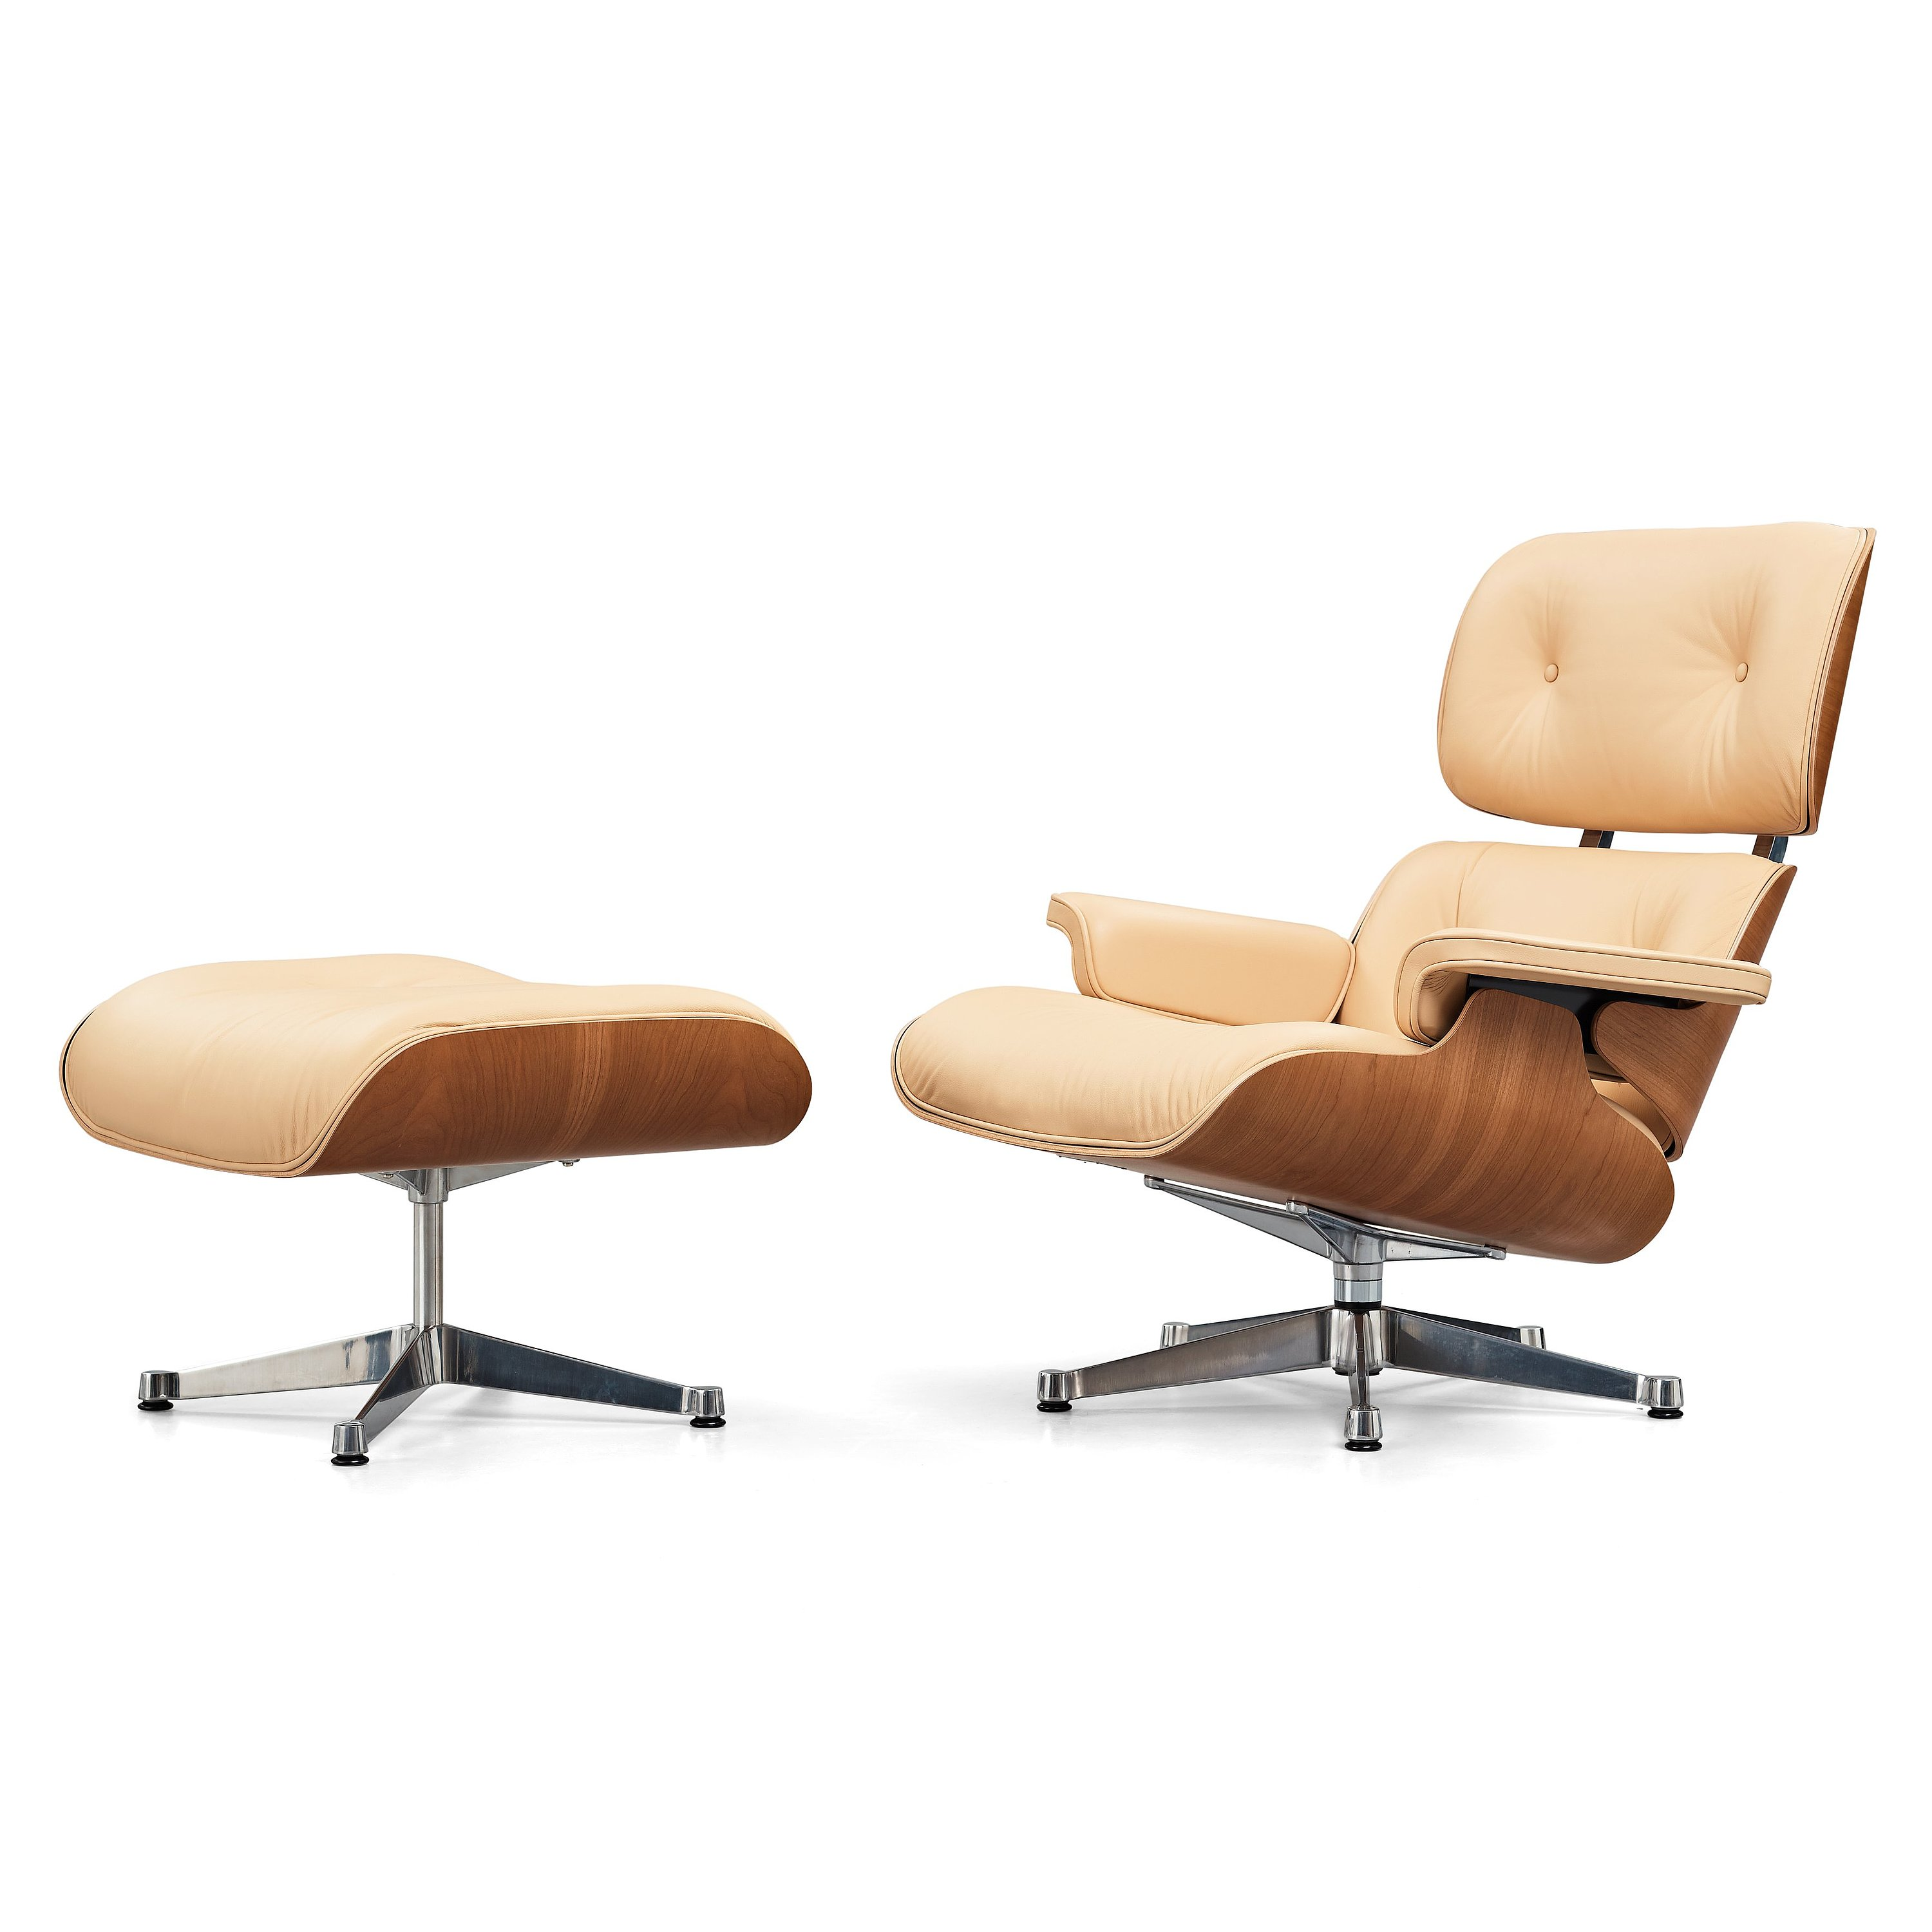 Charles Eames Lounge Chair Charles & Ray Eames, \